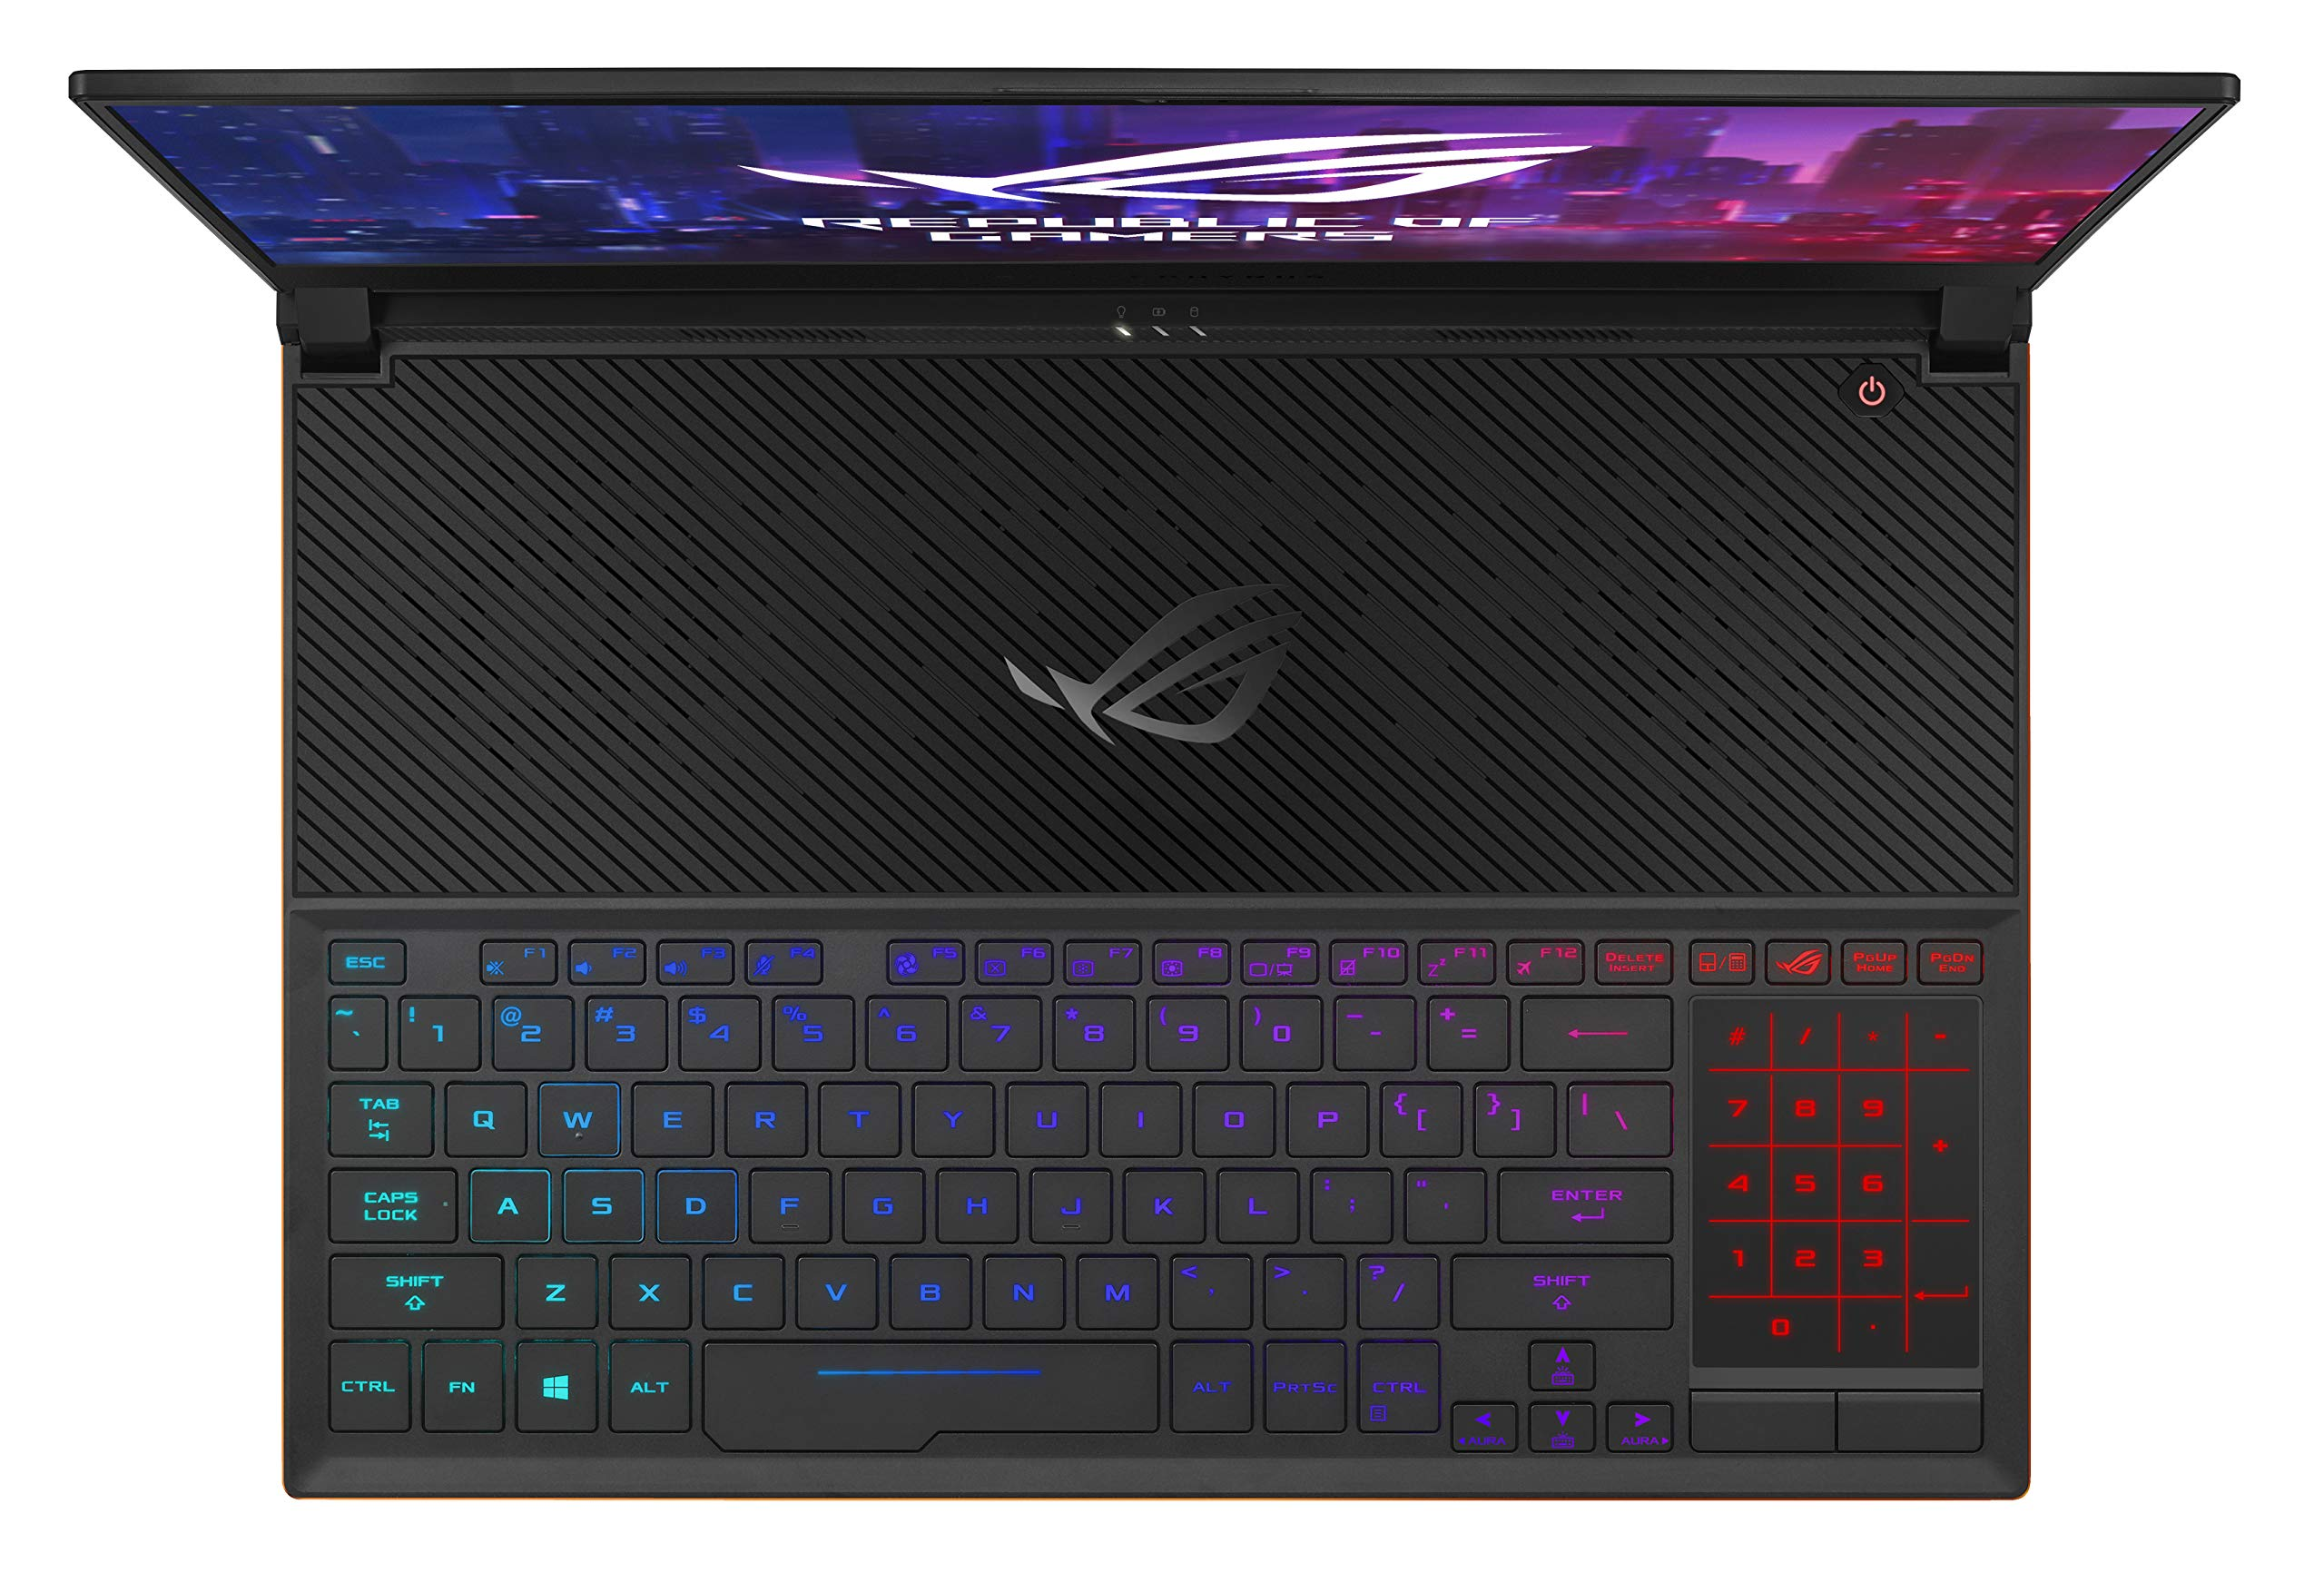 "ASUS ROG Zephyrus S Ultra Slim Gaming Laptop, 15.6"" 144Hz IPS Type FHD, GeForce RTX 2070, Intel Core i7-8750H, 16GB DDR4, 512GB PCIe NVMe SSD, Aura Sync RGB, Windows 10 64-bit, GX531GW-AS76 .62"" Thin by ASUS (Image #3)"